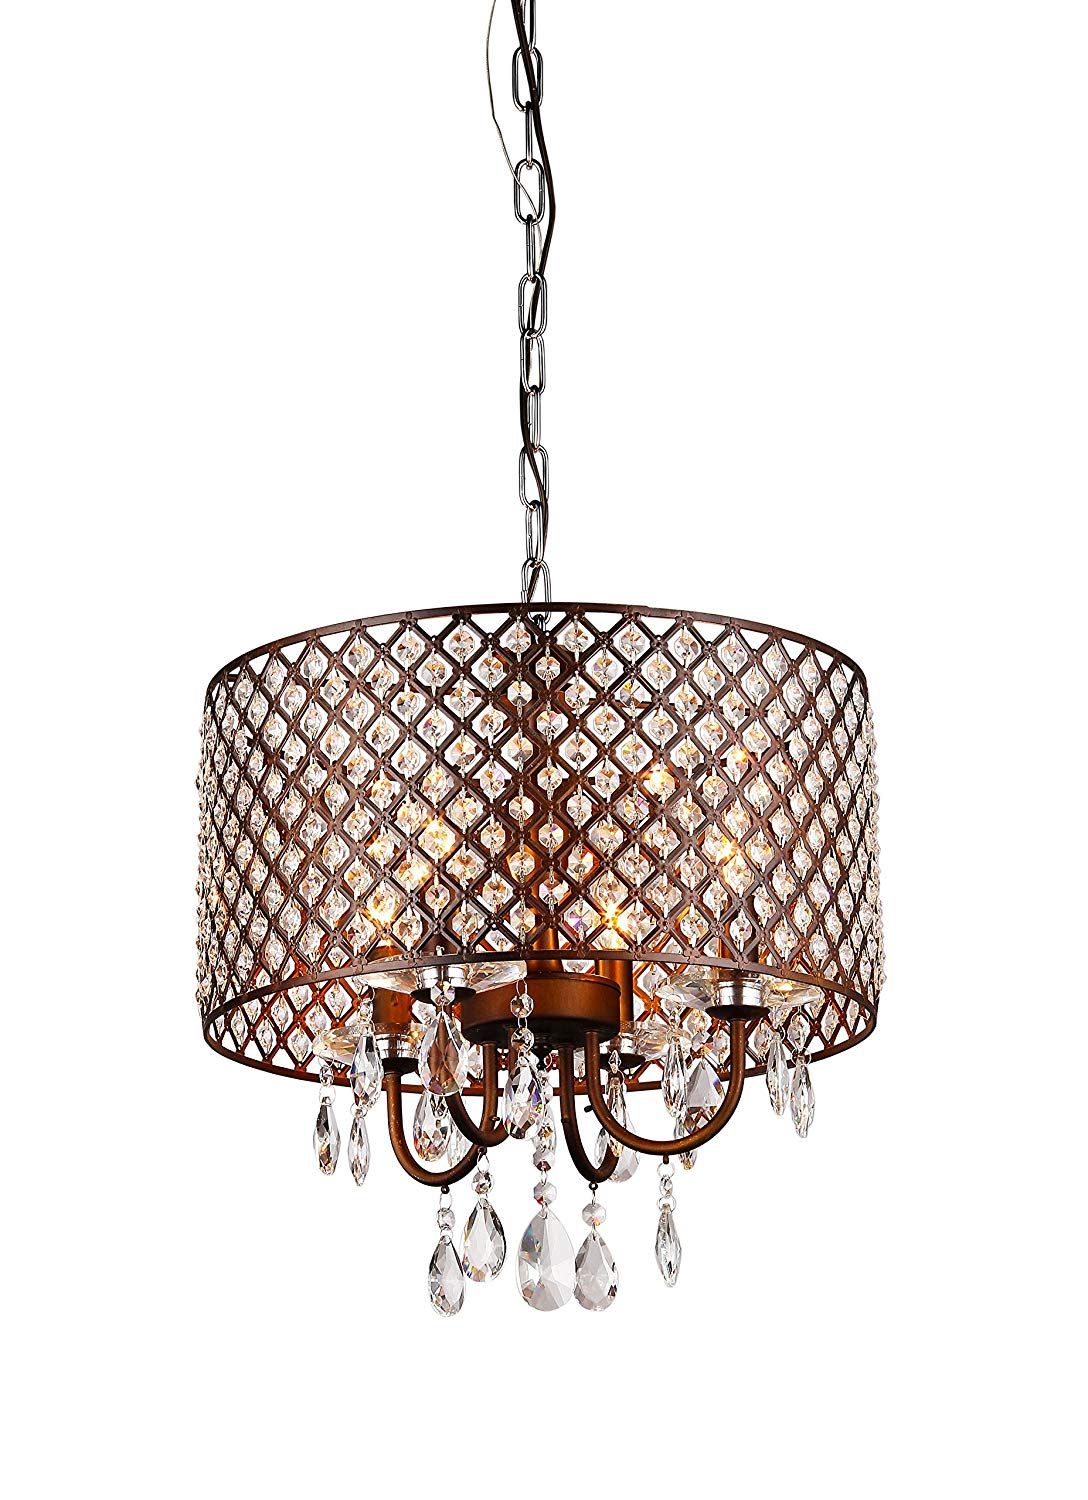 Armande 4 Light Lantern Drum Pendants Throughout Best And Newest Whse Of Tiffany Rl8064 Alexia Antique Bronze Chandelier (View 15 of 25)